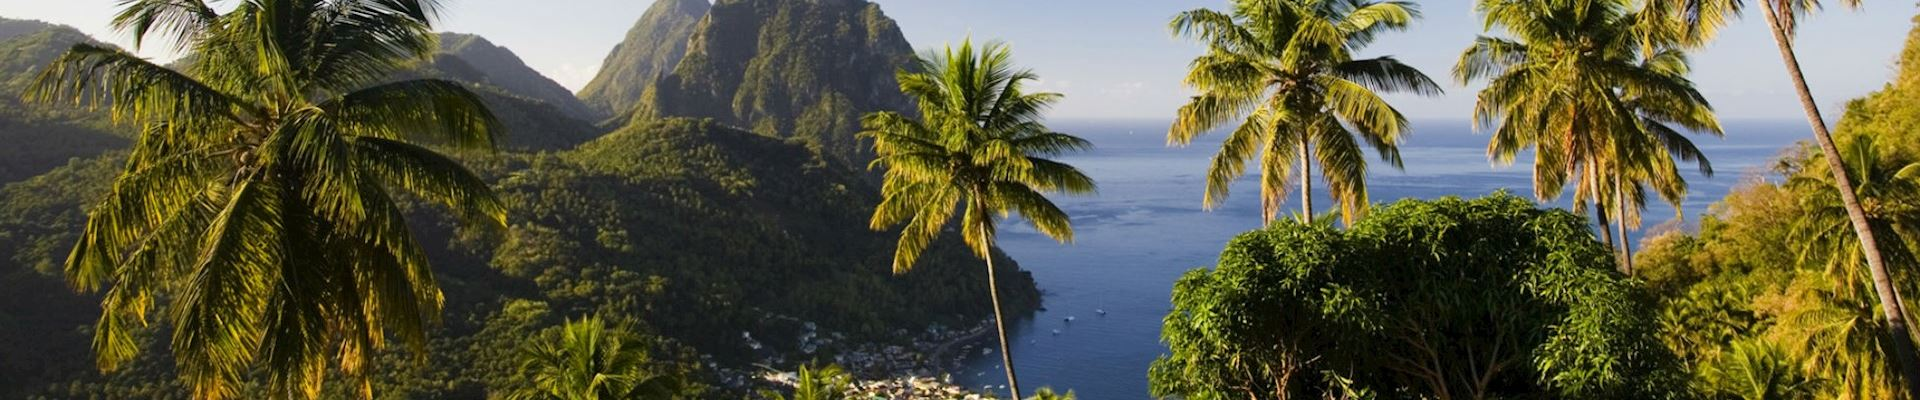 St Lucia Holidays 2019 2020 All Inclusive Deals